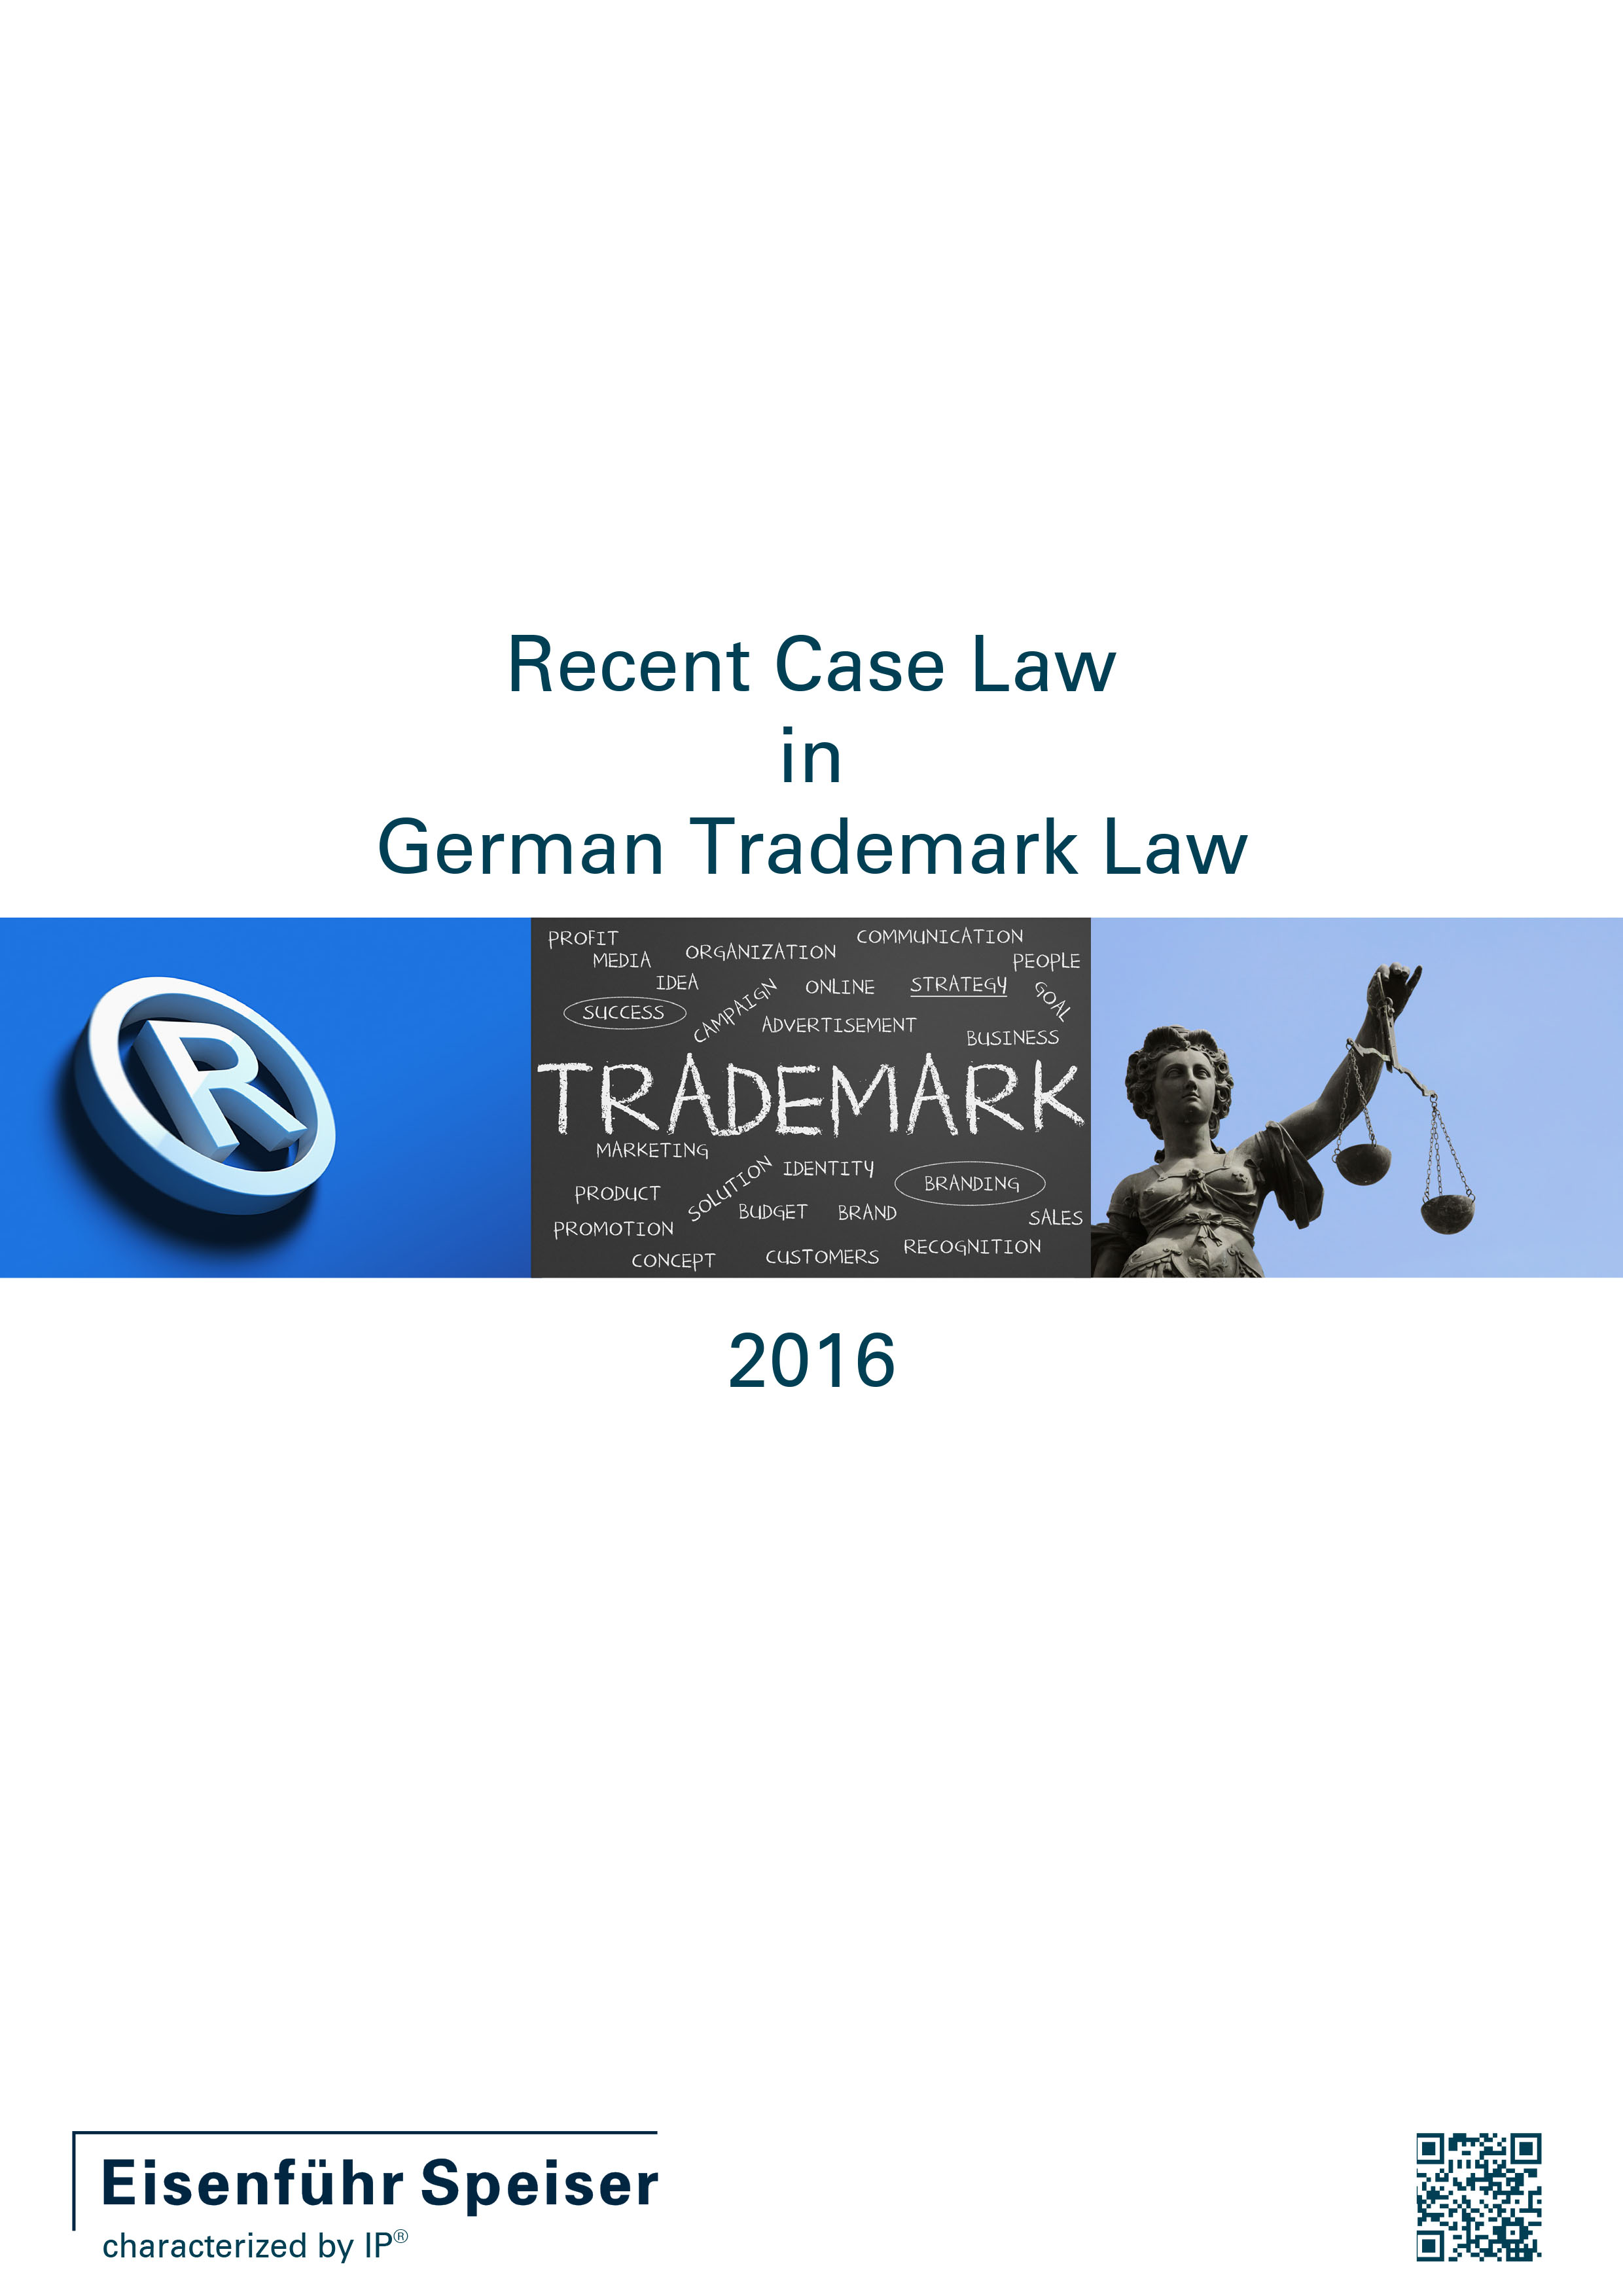 Recent Case Law in German Trademark Law 2016